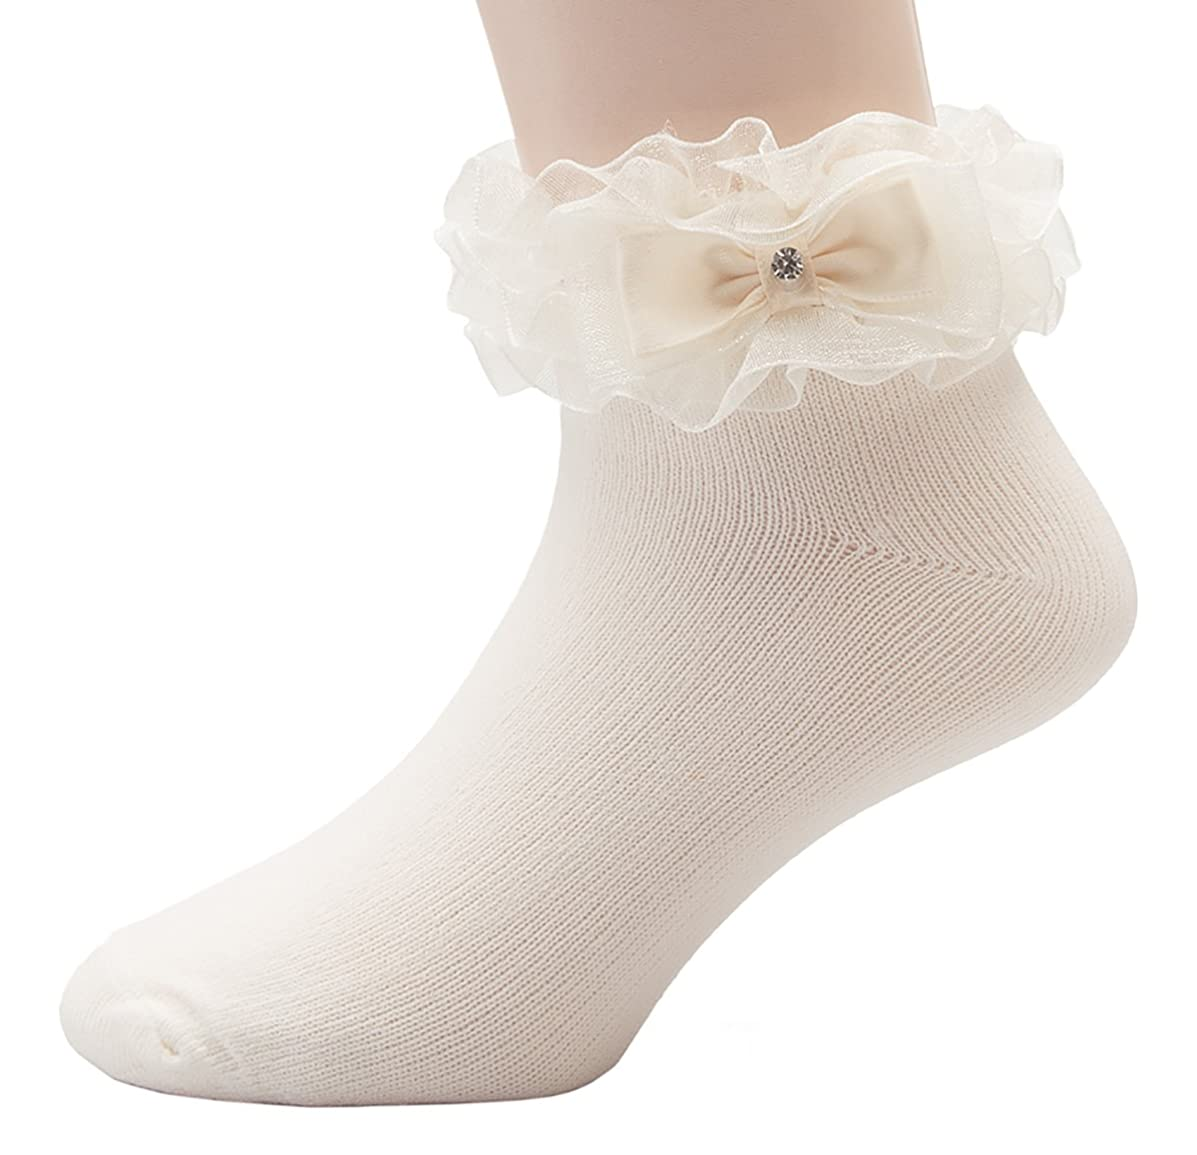 OLIVIA KOO Girl's Organza Multi Ruffle Top Anklet Socks (Infant to 11 Years)